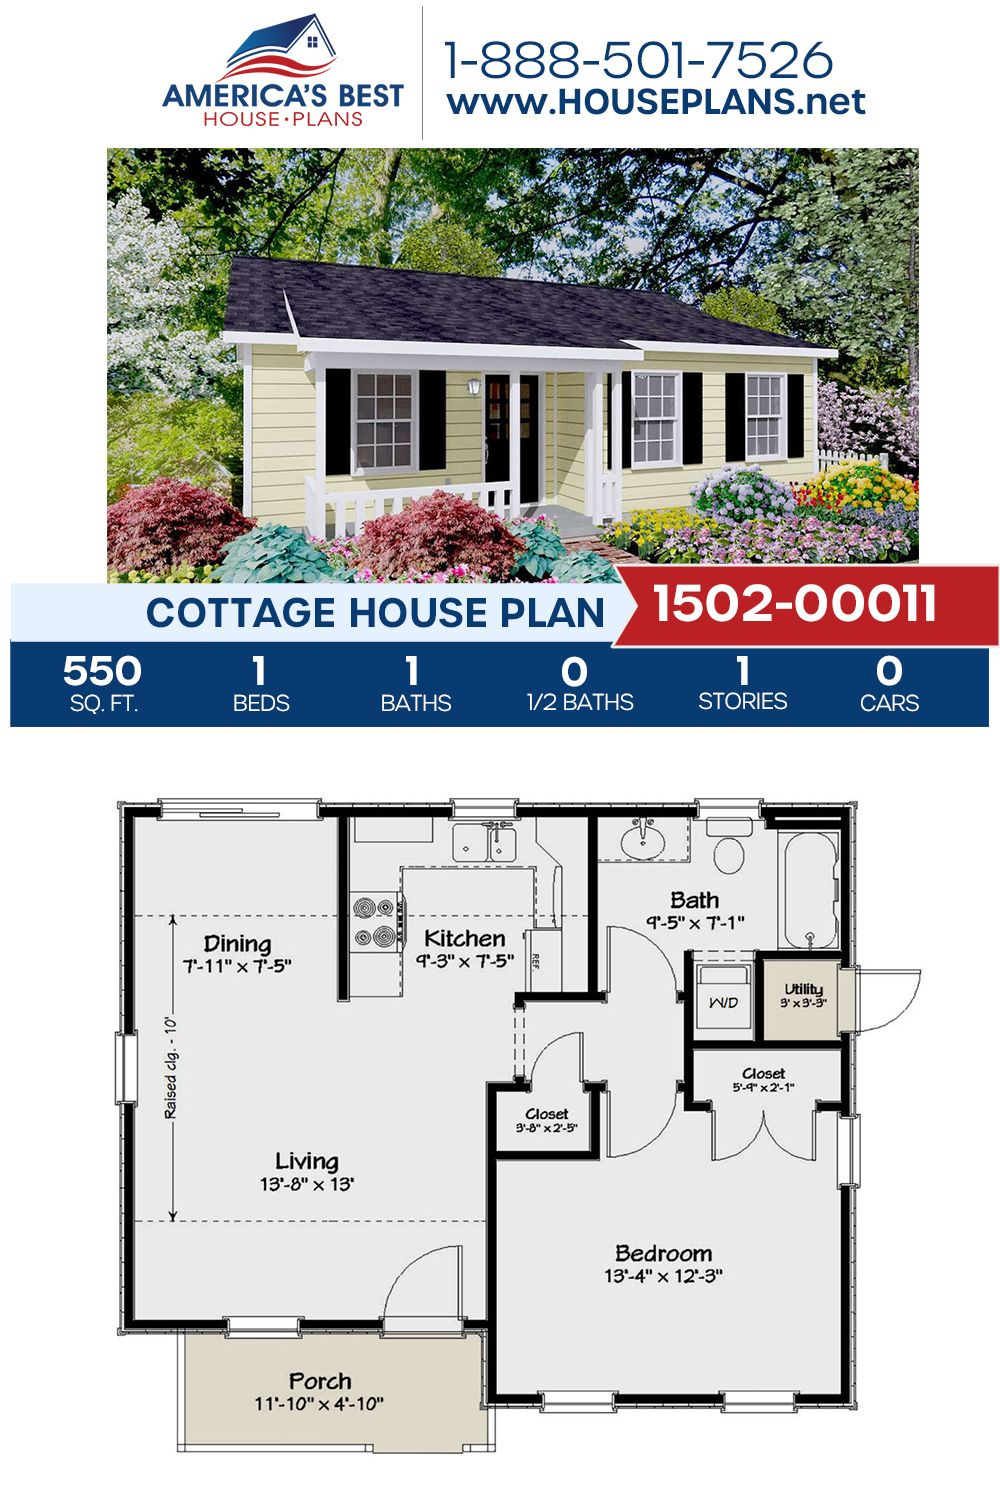 House Plan 1502 00011 Cottage Plan 550 Square Feet 1 Bedroom 1 Bathroom Cottage Plan Small Cottage House Plans Guest House Plans